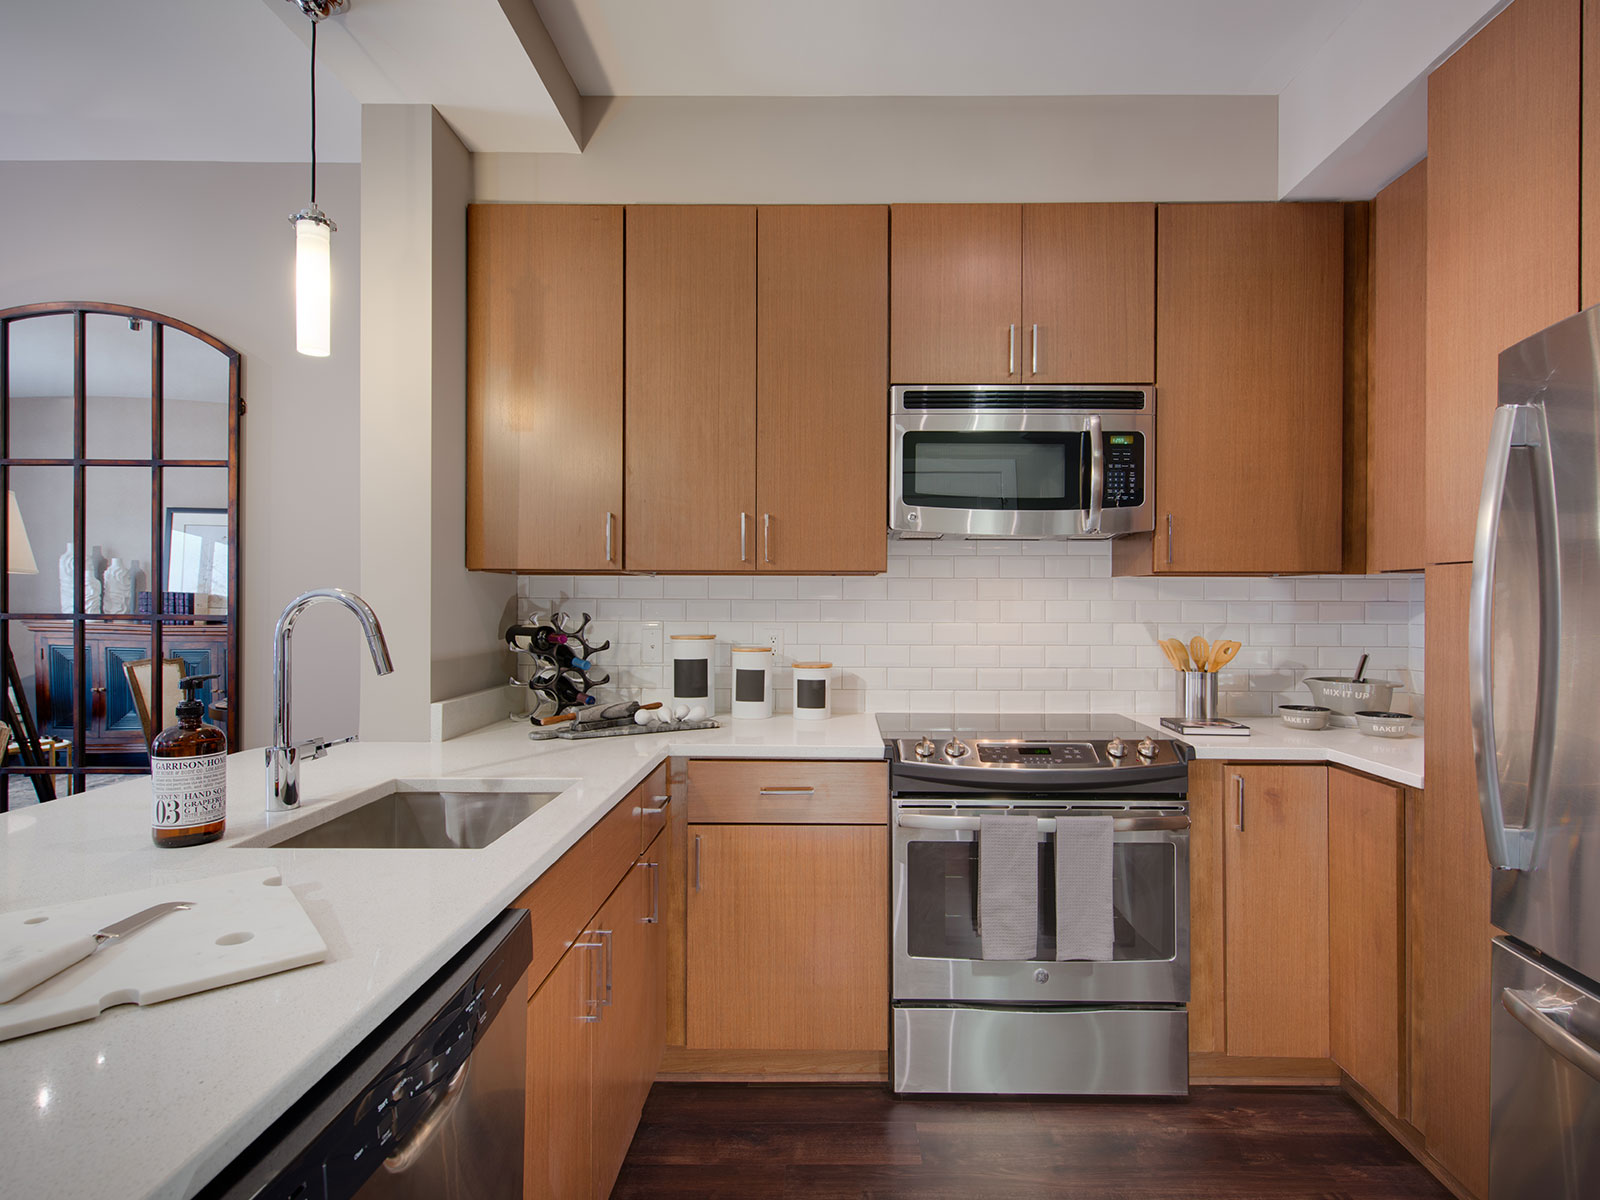 stone kitchen backsplash pictures features luxury apartments washington dc cathedral 5833